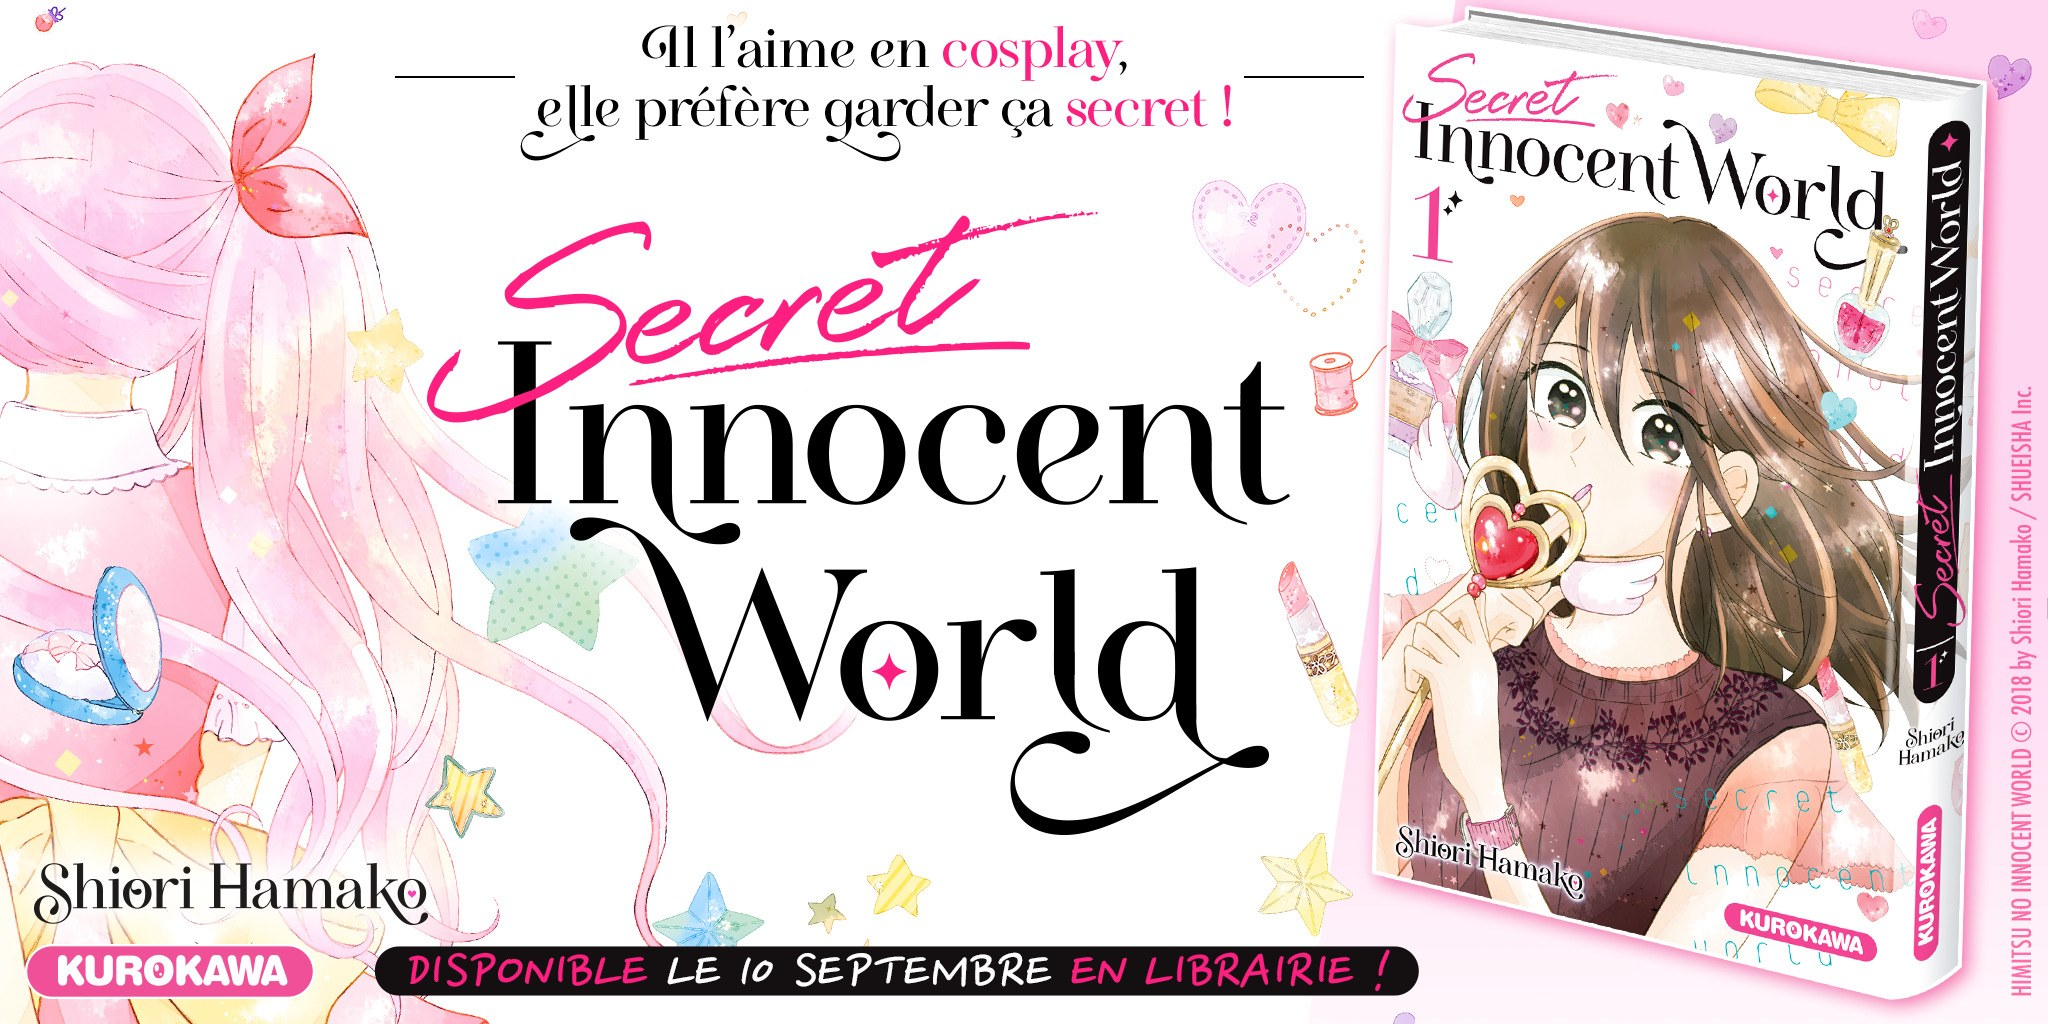 Secret Innocent World, le nouveau Shojo de chez Kurokawa